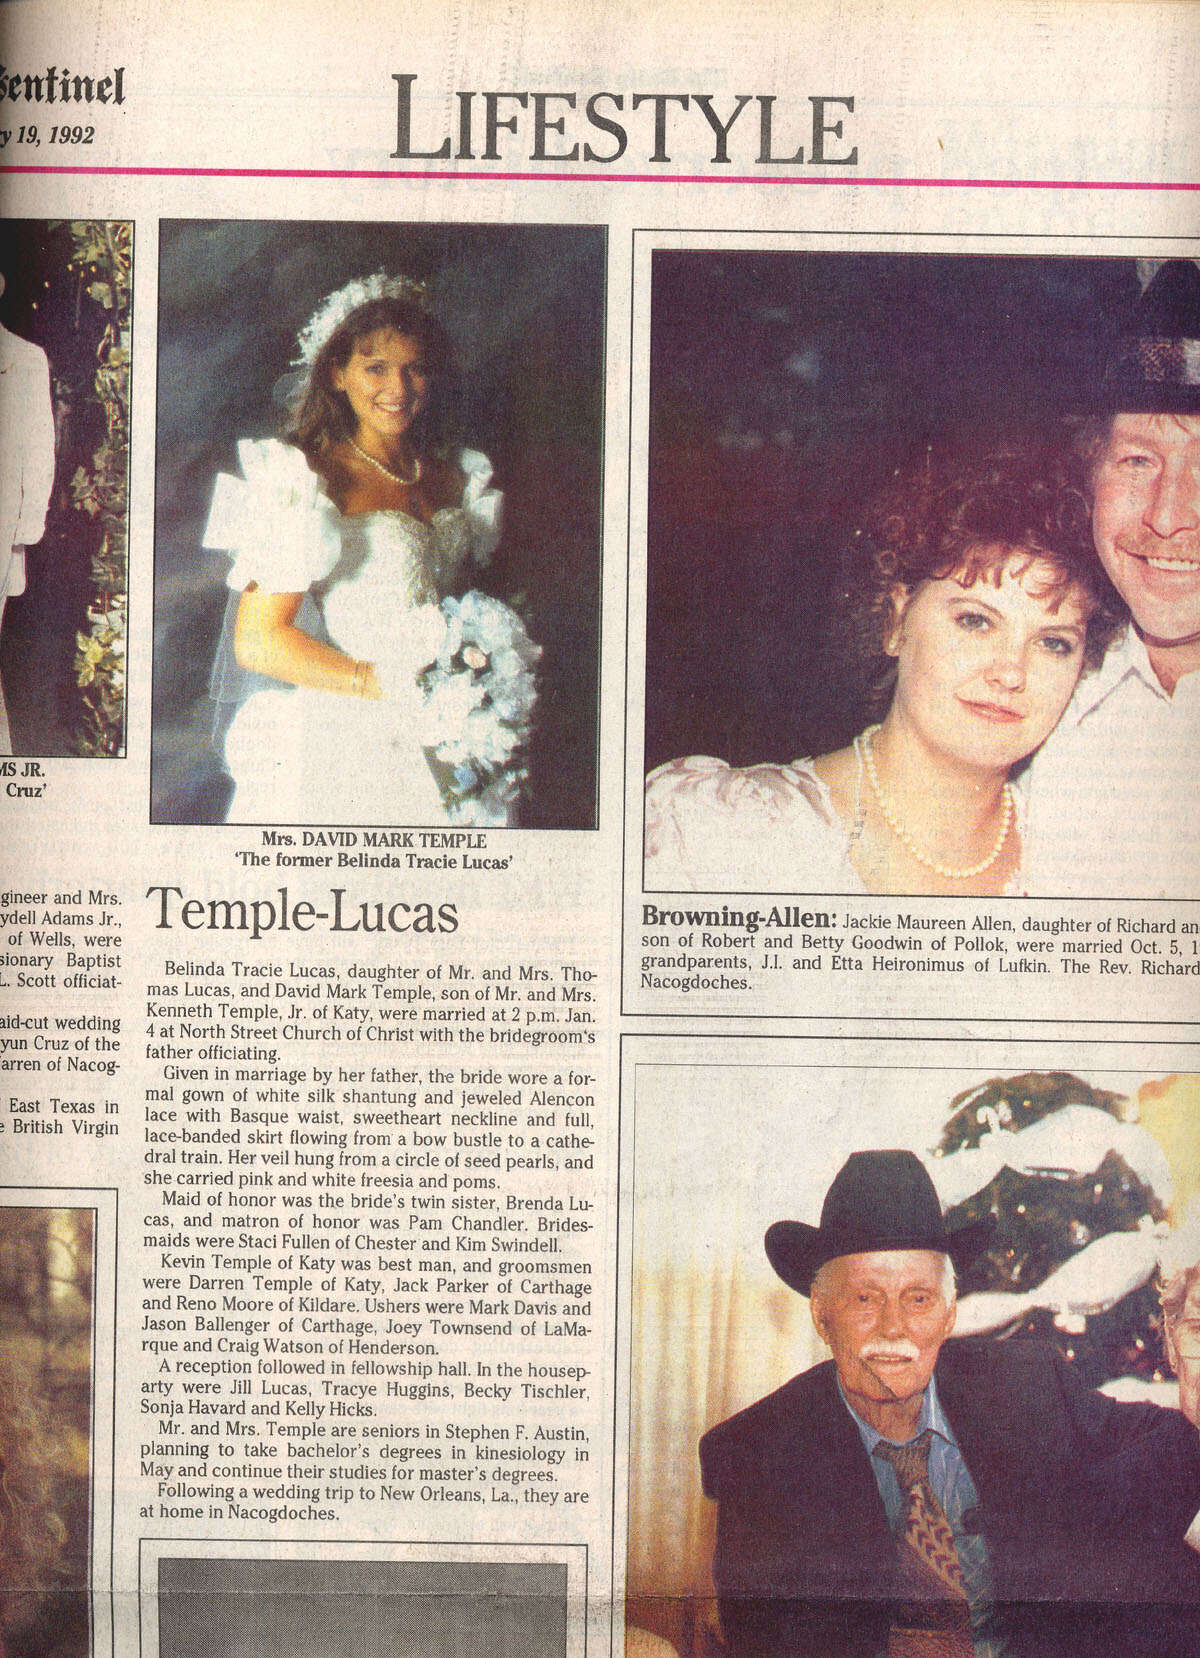 1992: David Temple, a former Katy football star, married Belinda Lucas in her hometown of Nacogdoches in 1992. They were college sweethearts at Stephen F. Austin State University and both went into education.